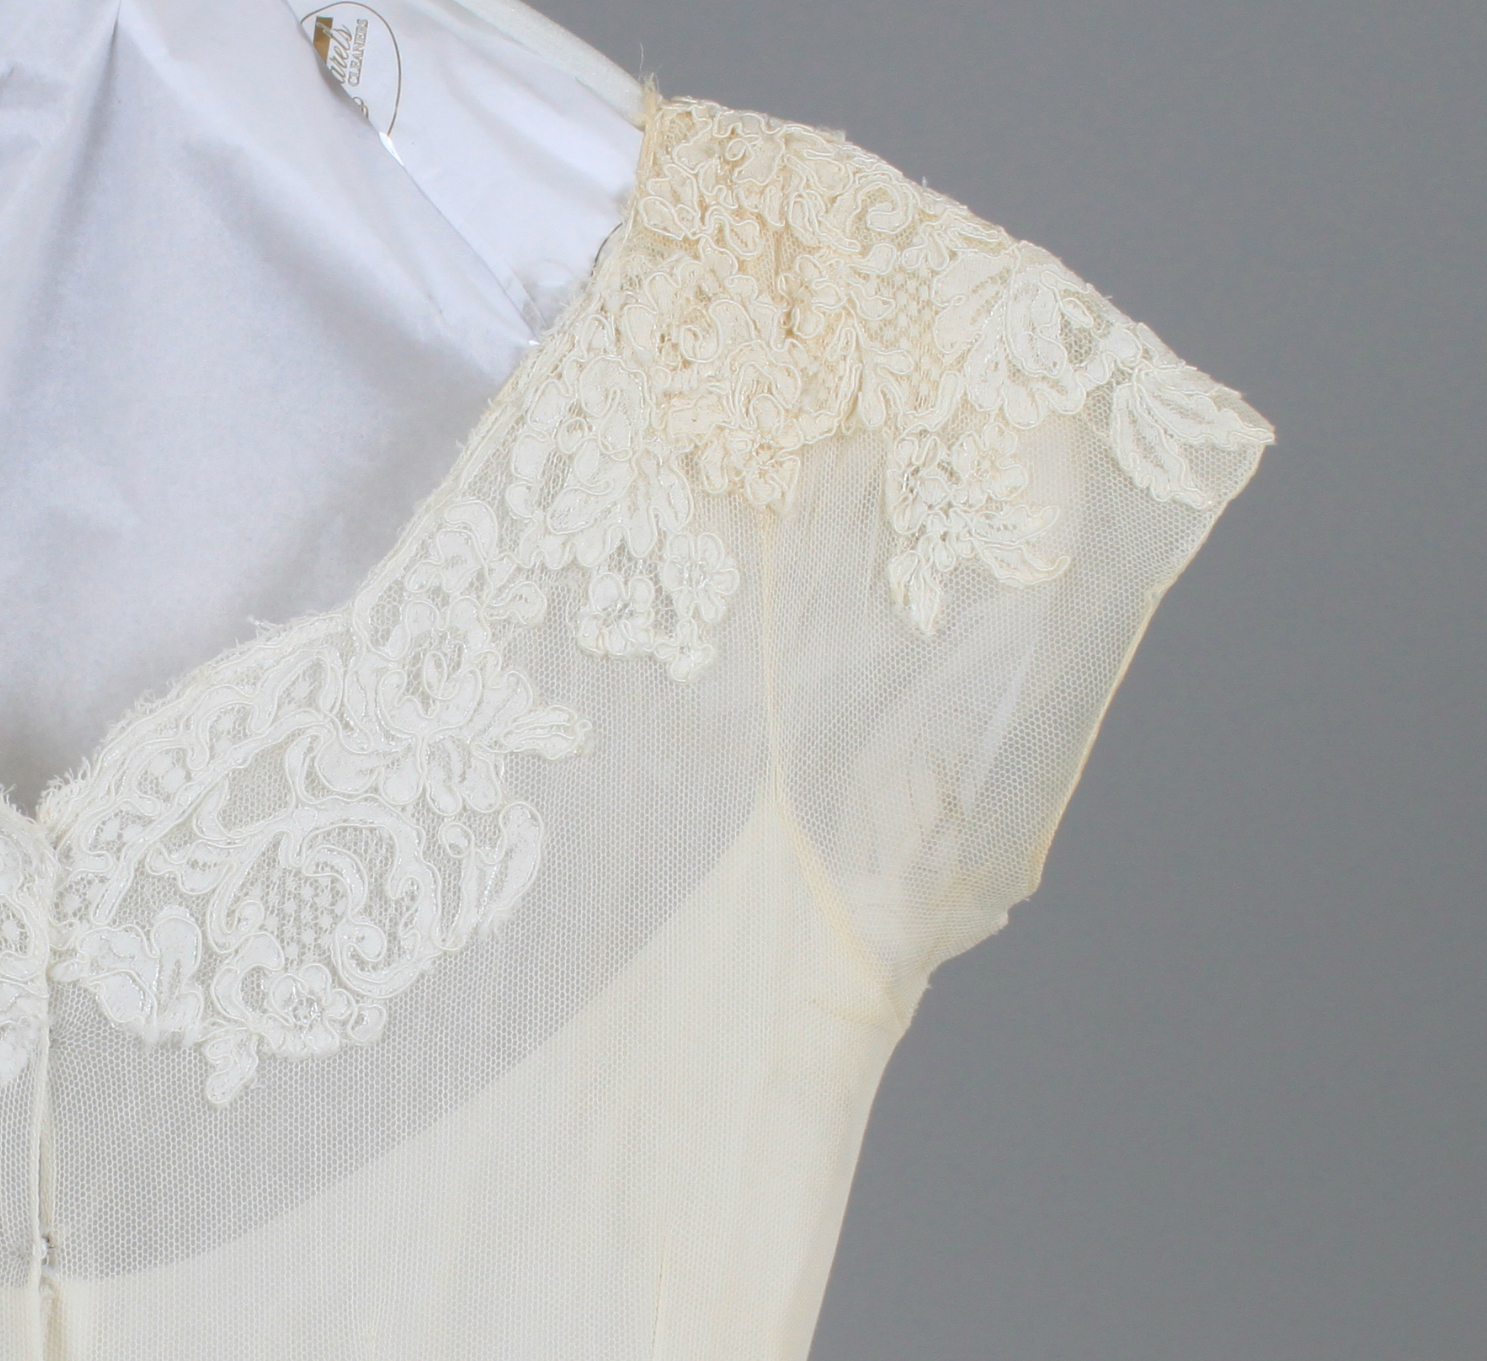 Restoration Wedding Gown: Bridal Gown Cleaning & Preservation: Follow A 50-year-old